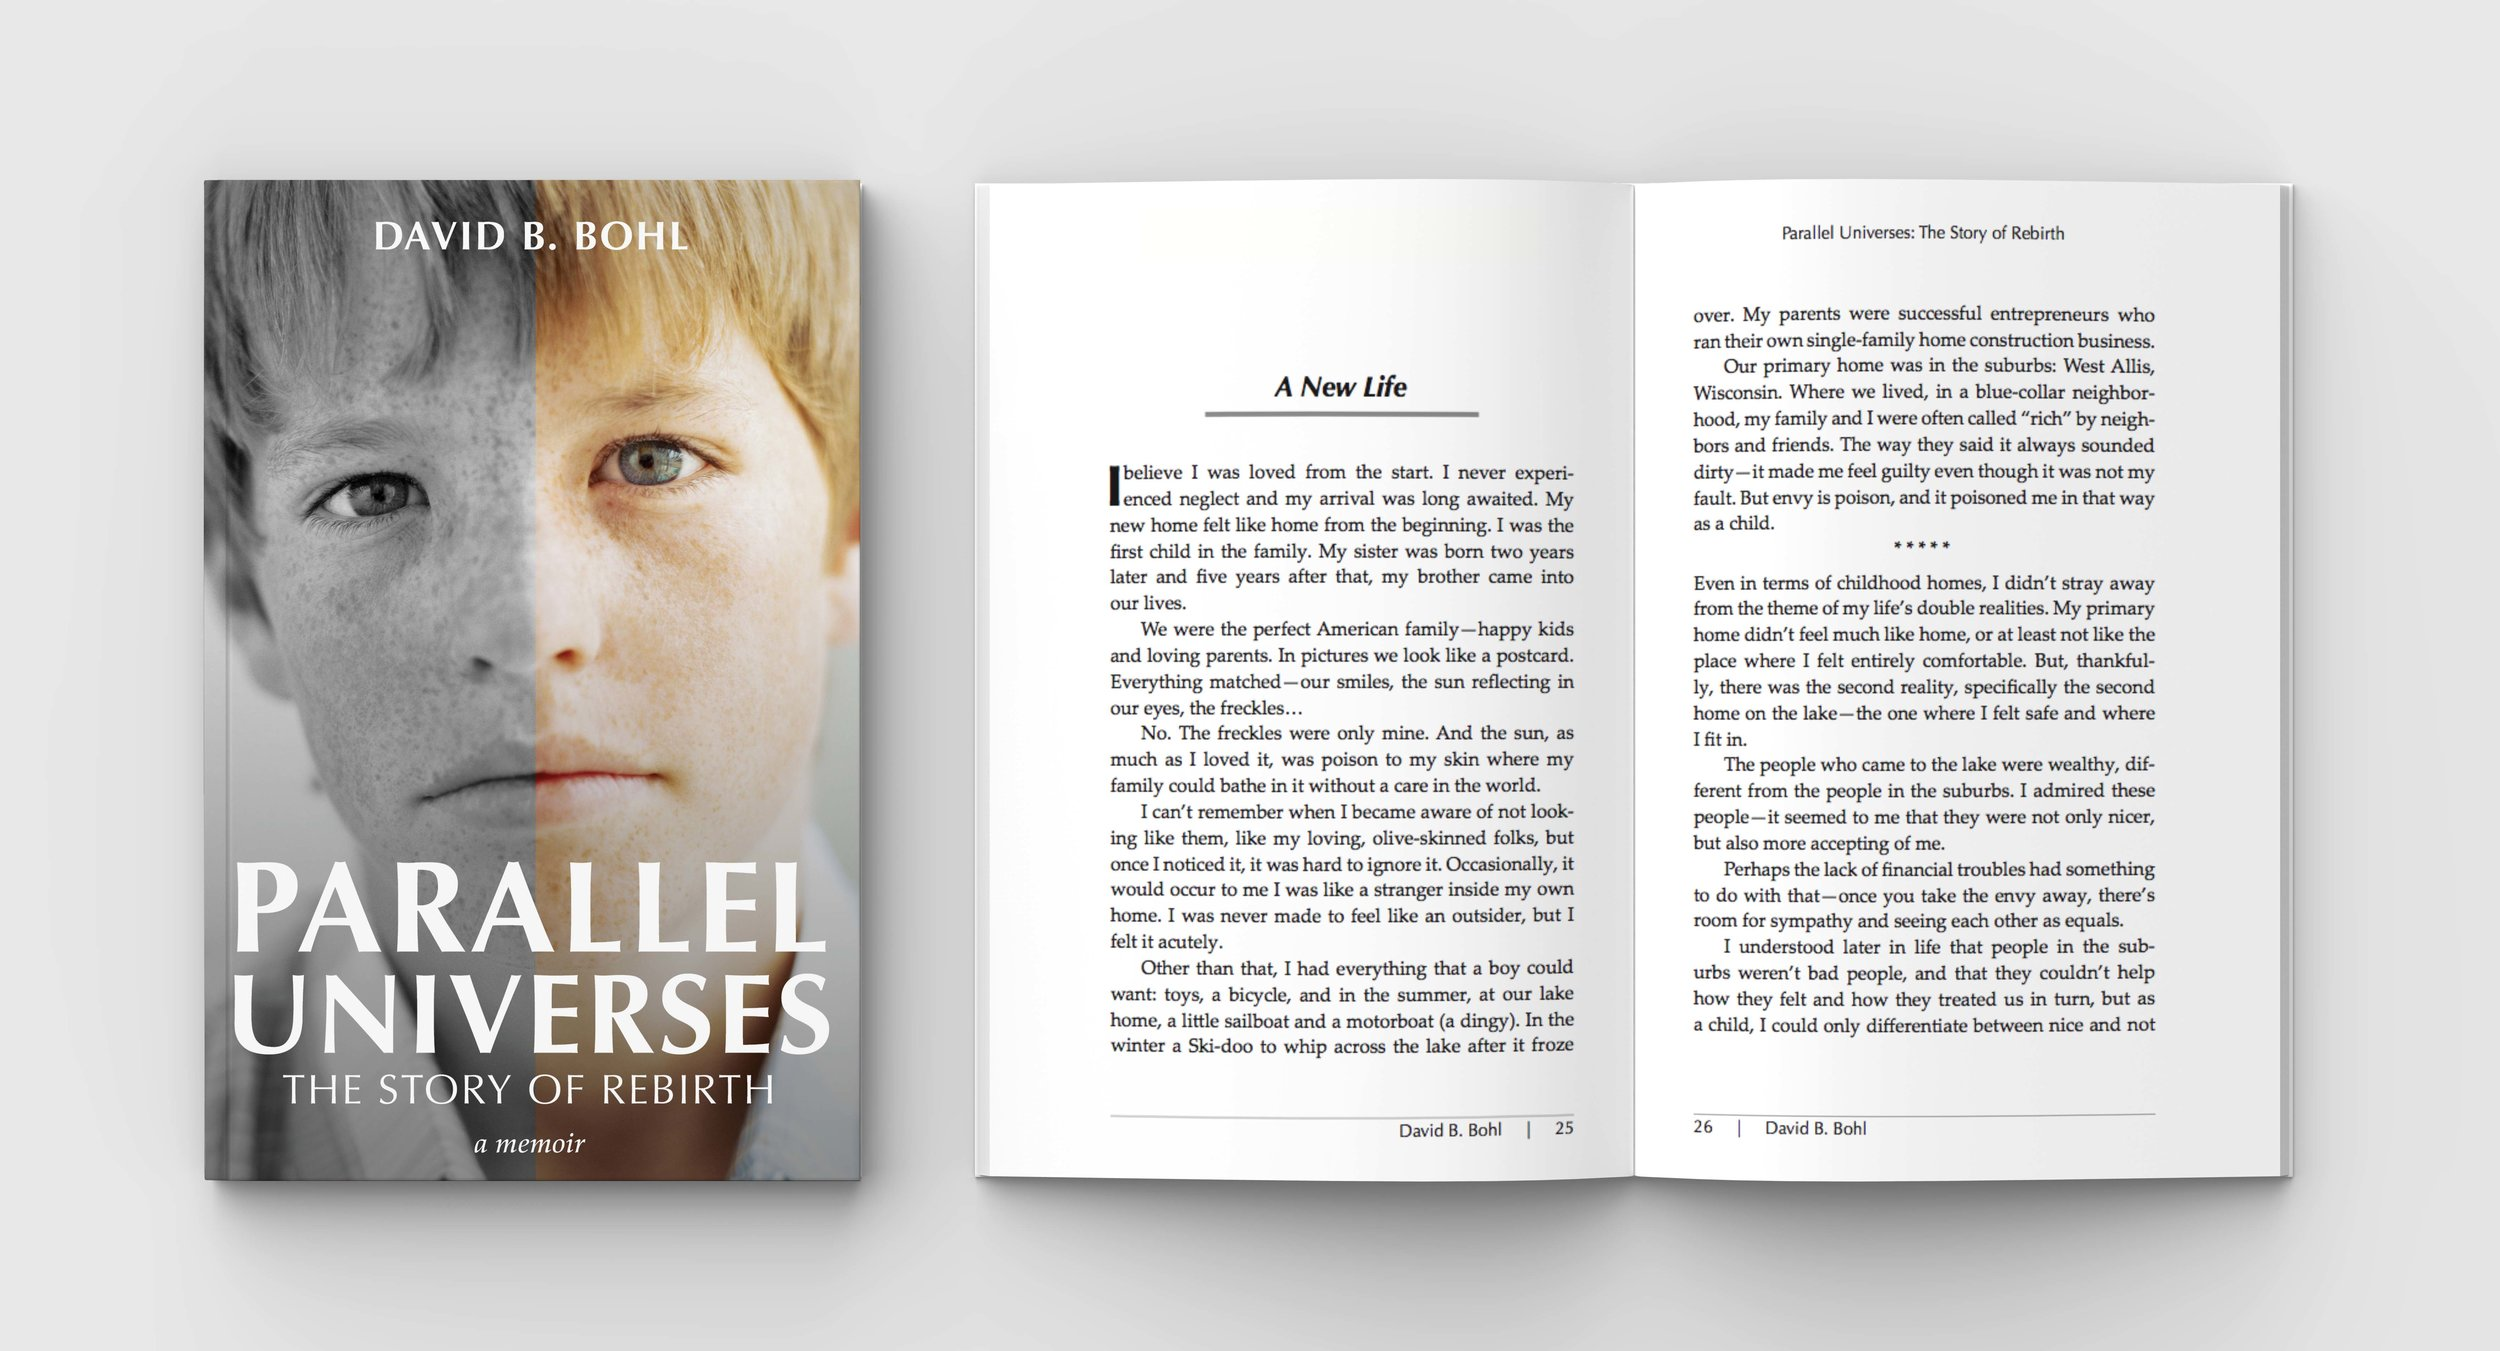 Parallel Universes  Book   Cover Design and Typesetting